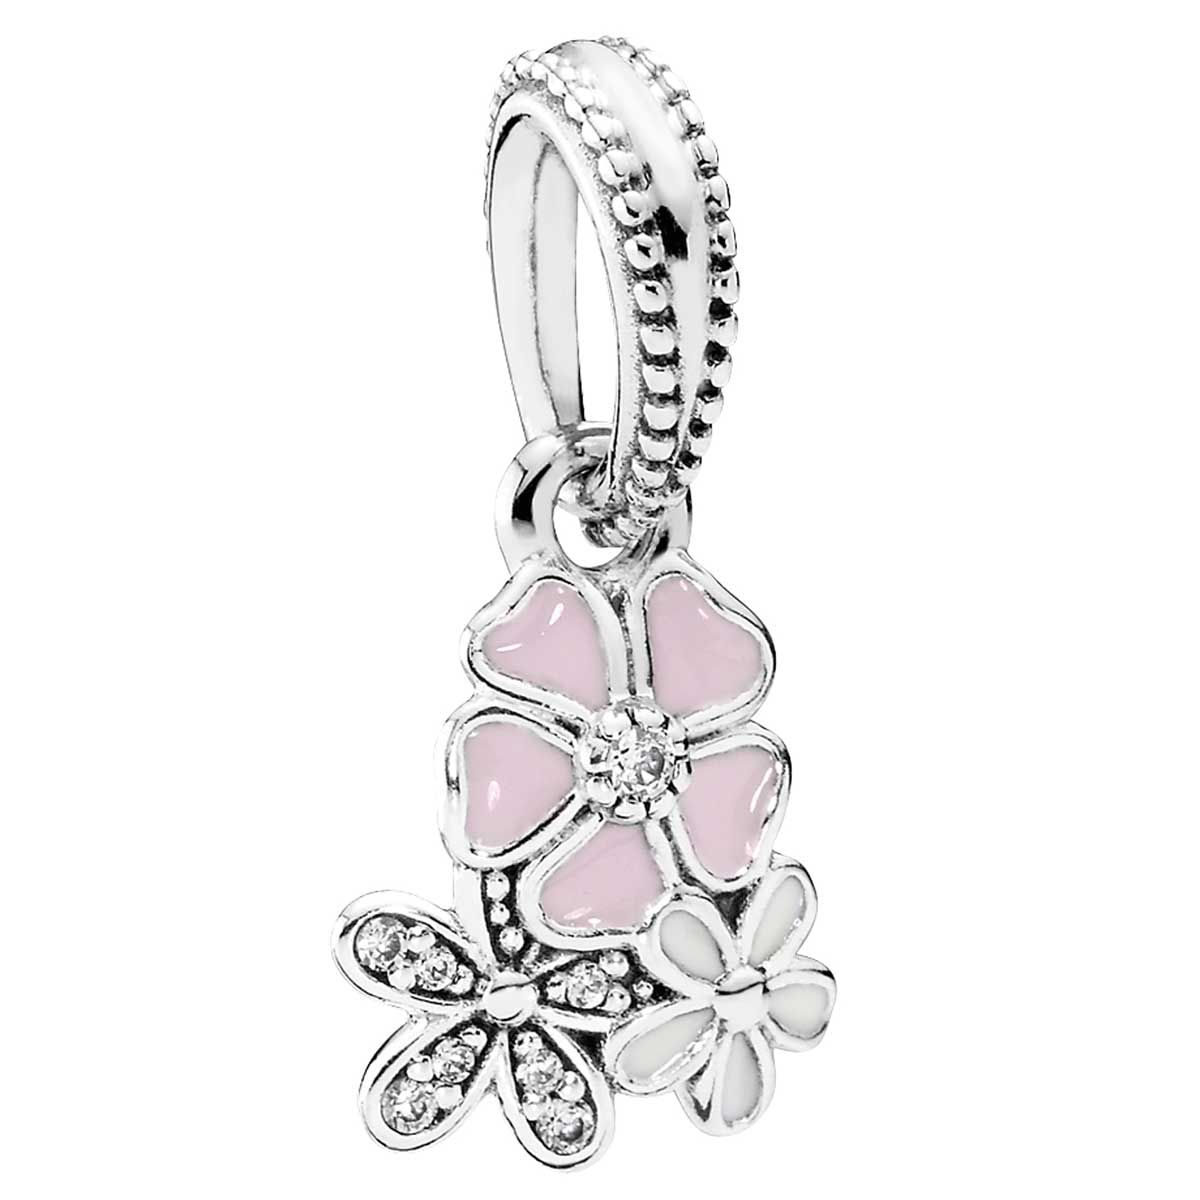 Pandora poetic blooms dangle shops shopping and the oujays